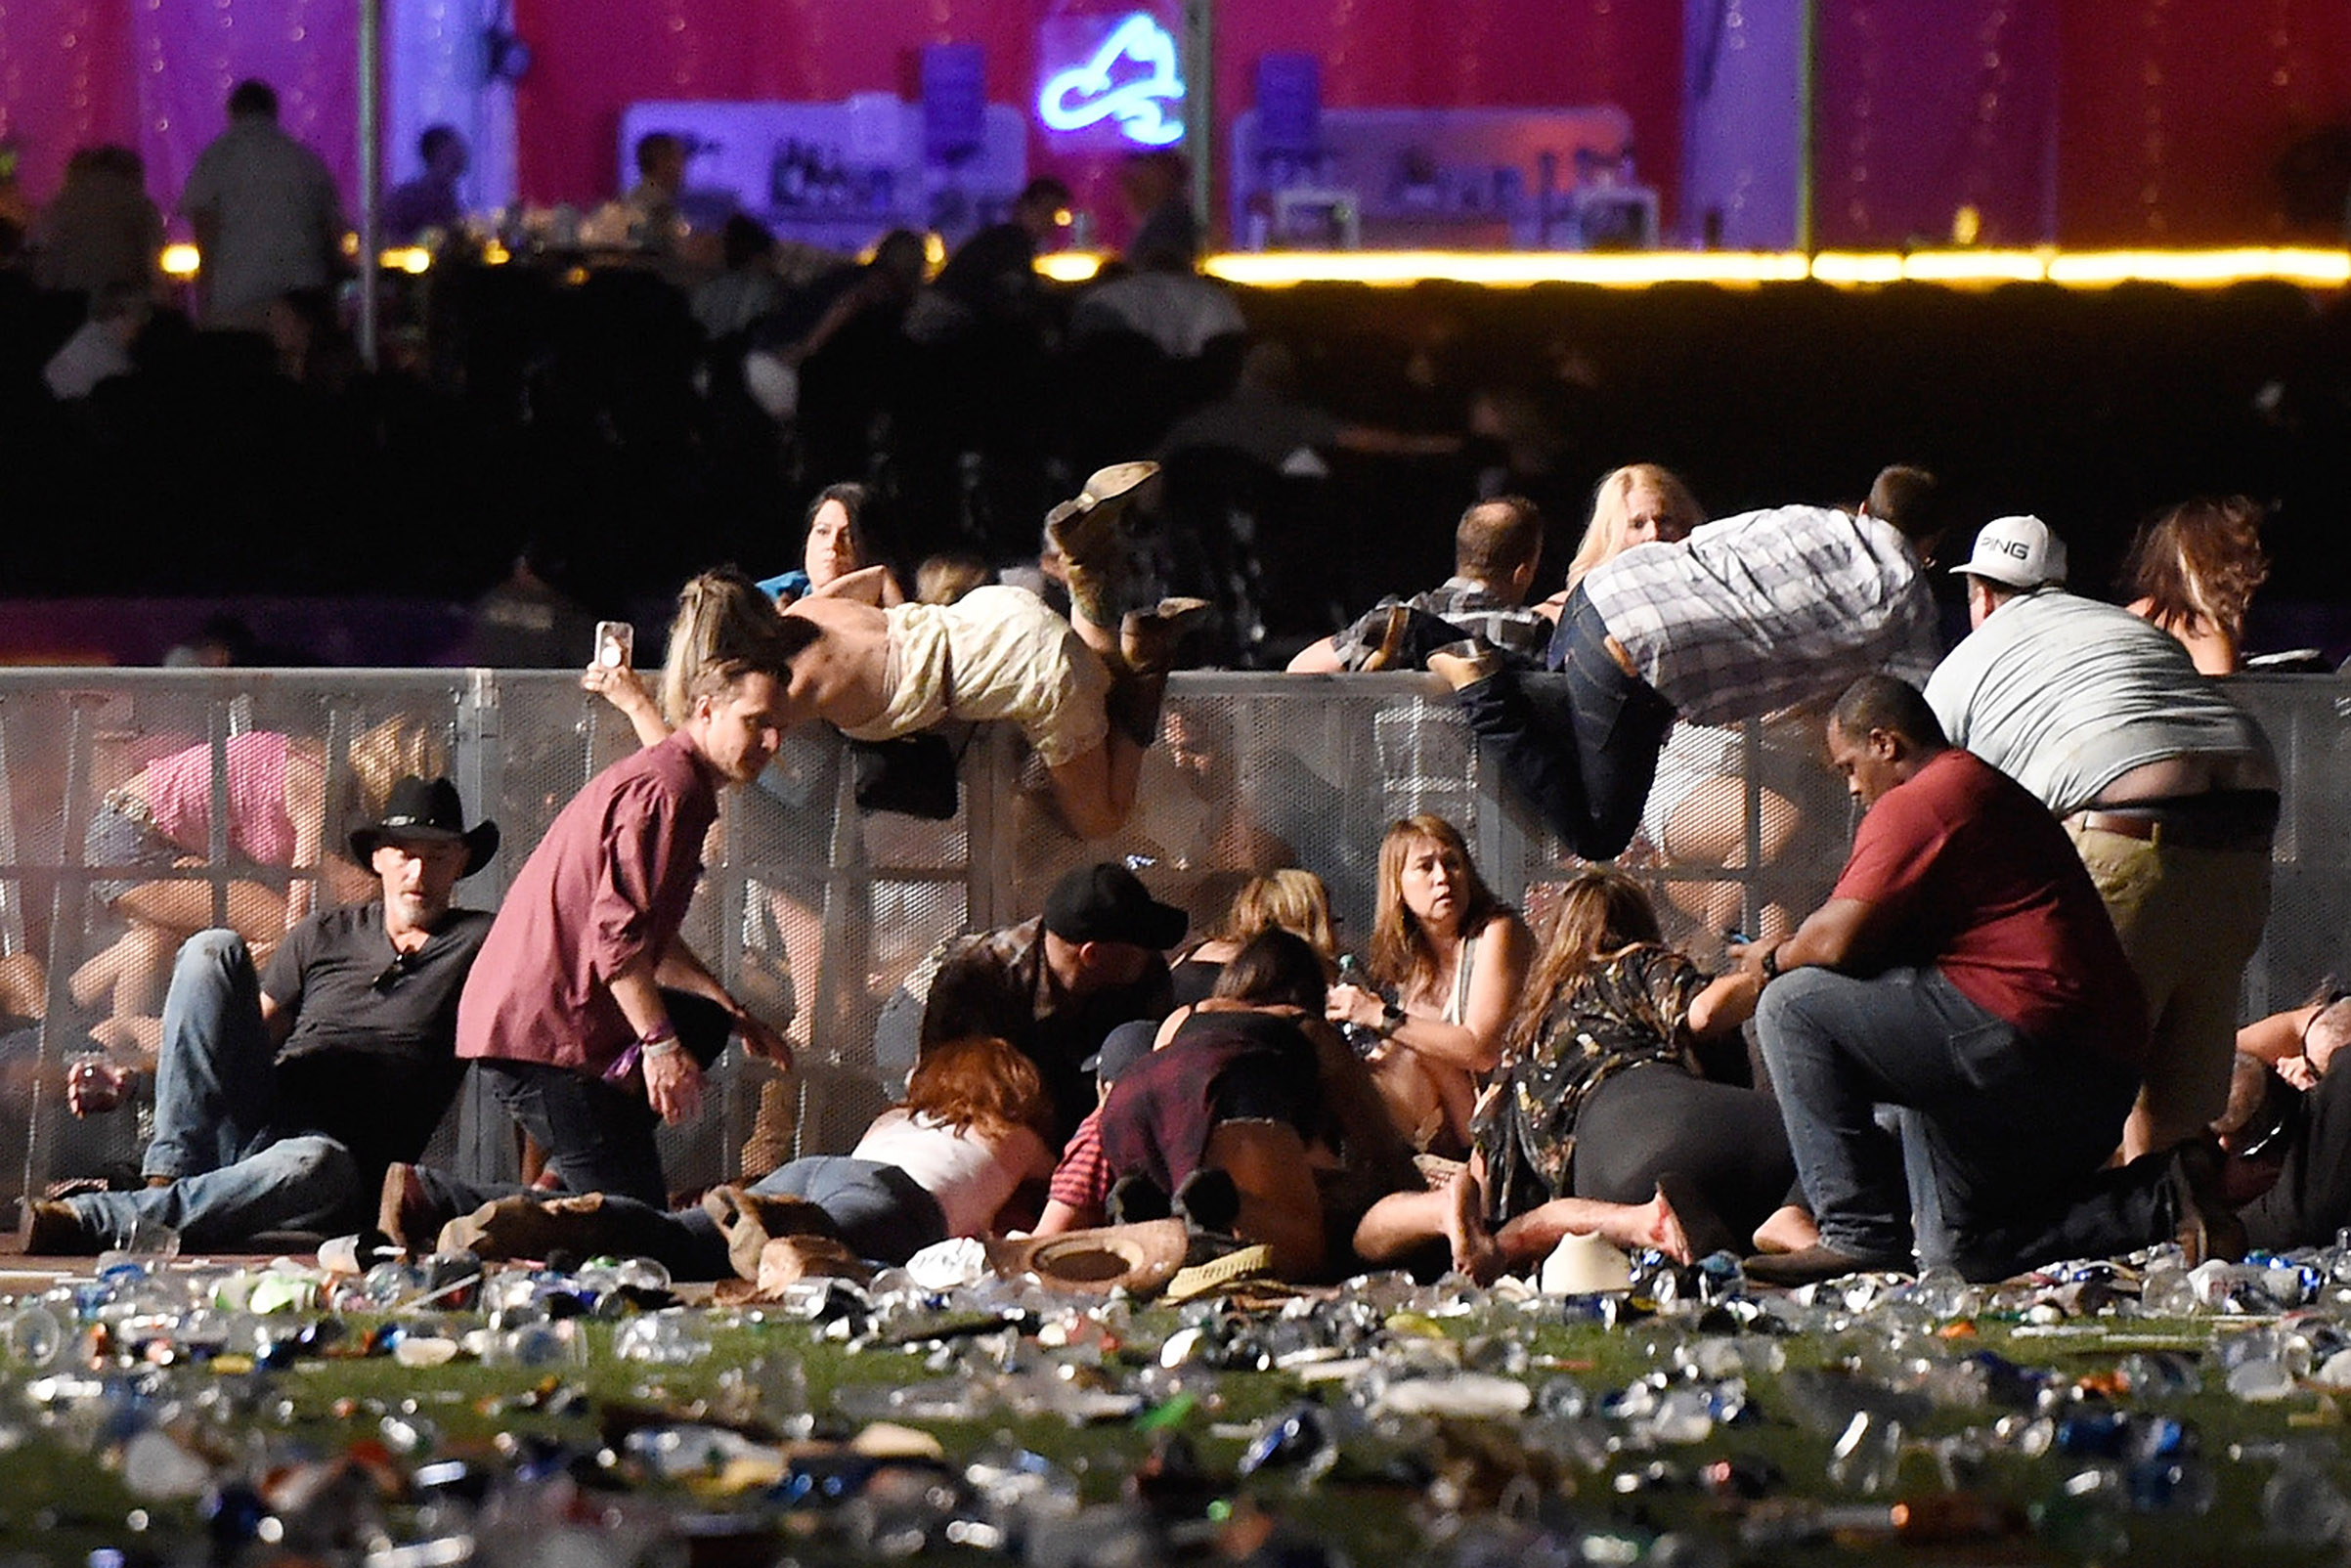 People scramble for shelter at the Route 91 Harvest country music festival after a shooting, Oct. 1, 2017 in Las Vegas.